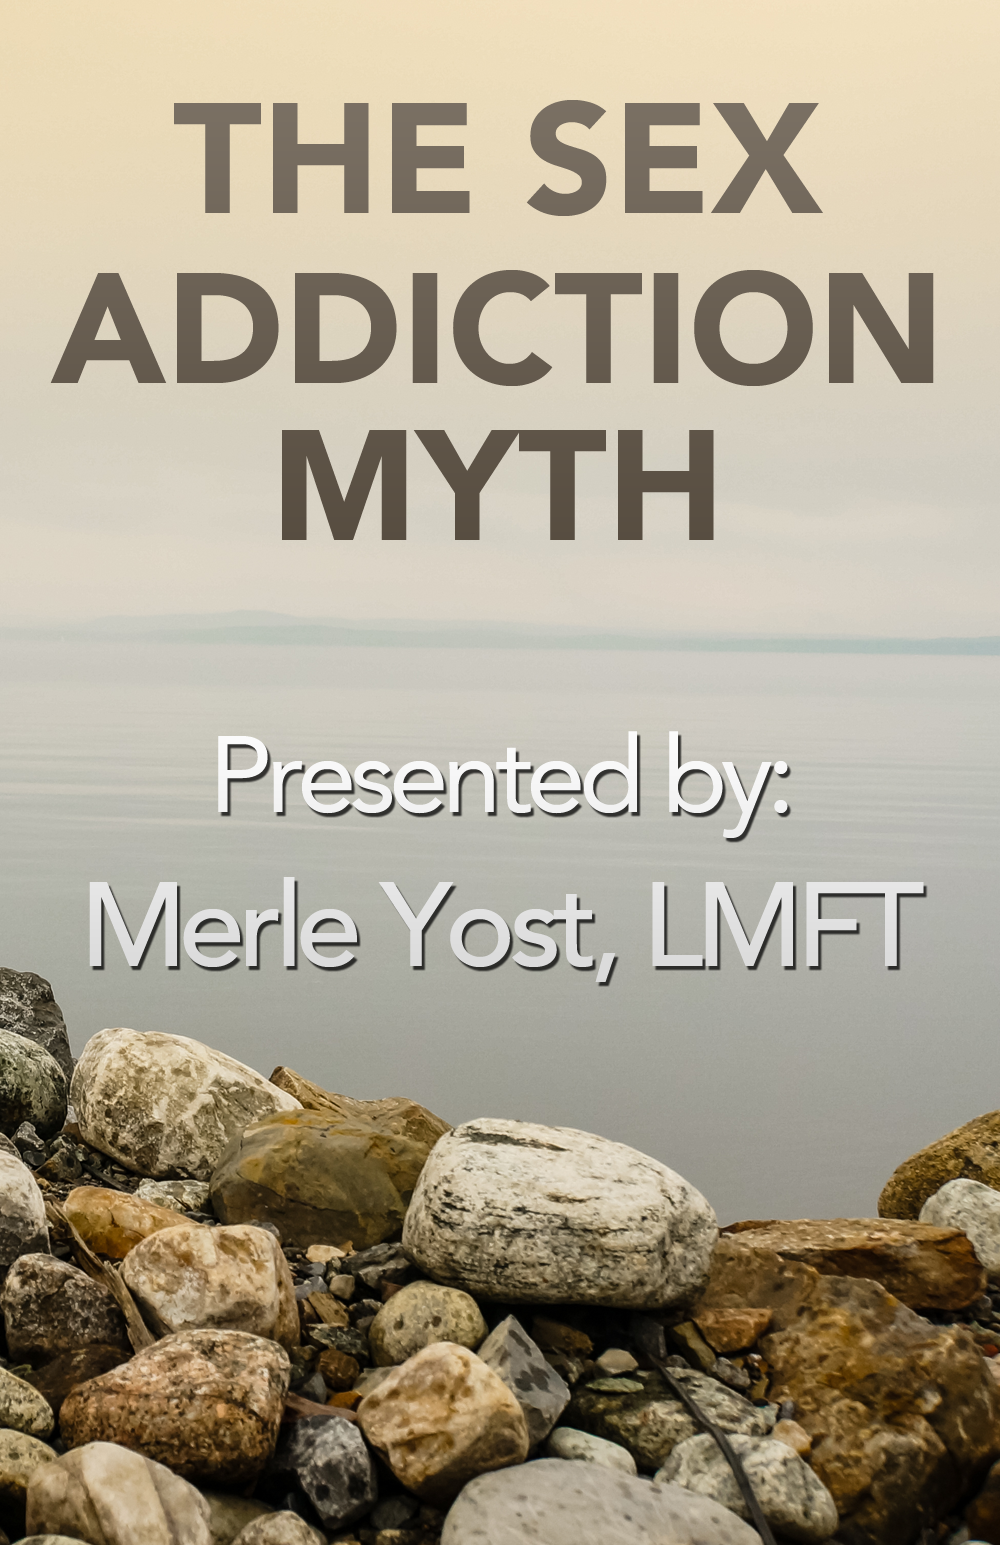 The Sex Addiction Myth Poster